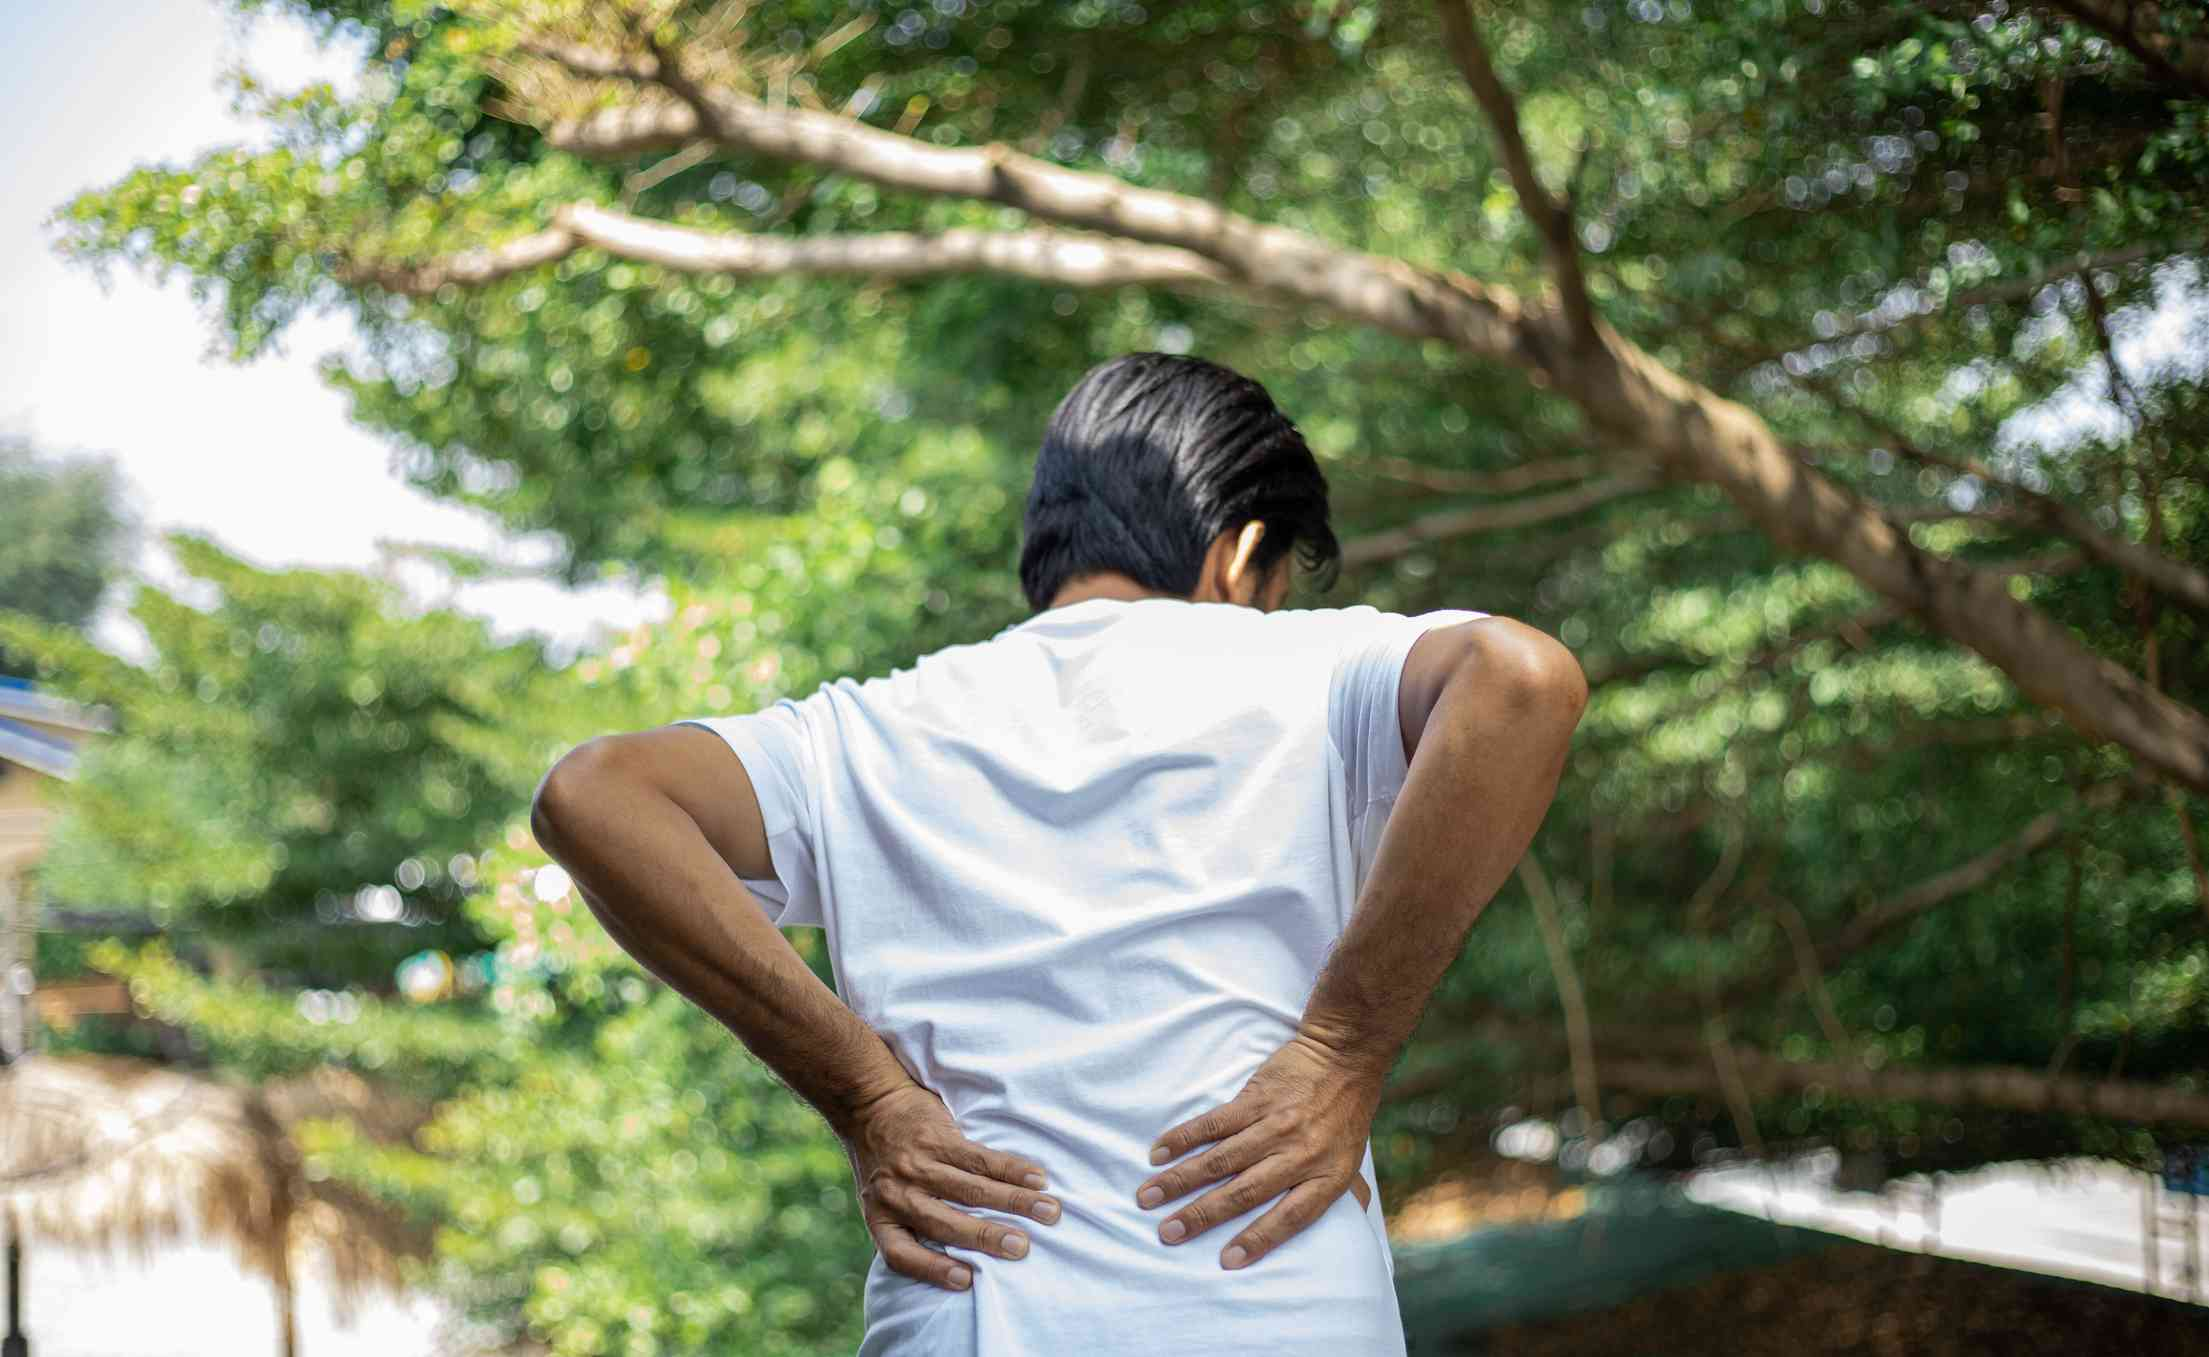 Person feels lower back pain